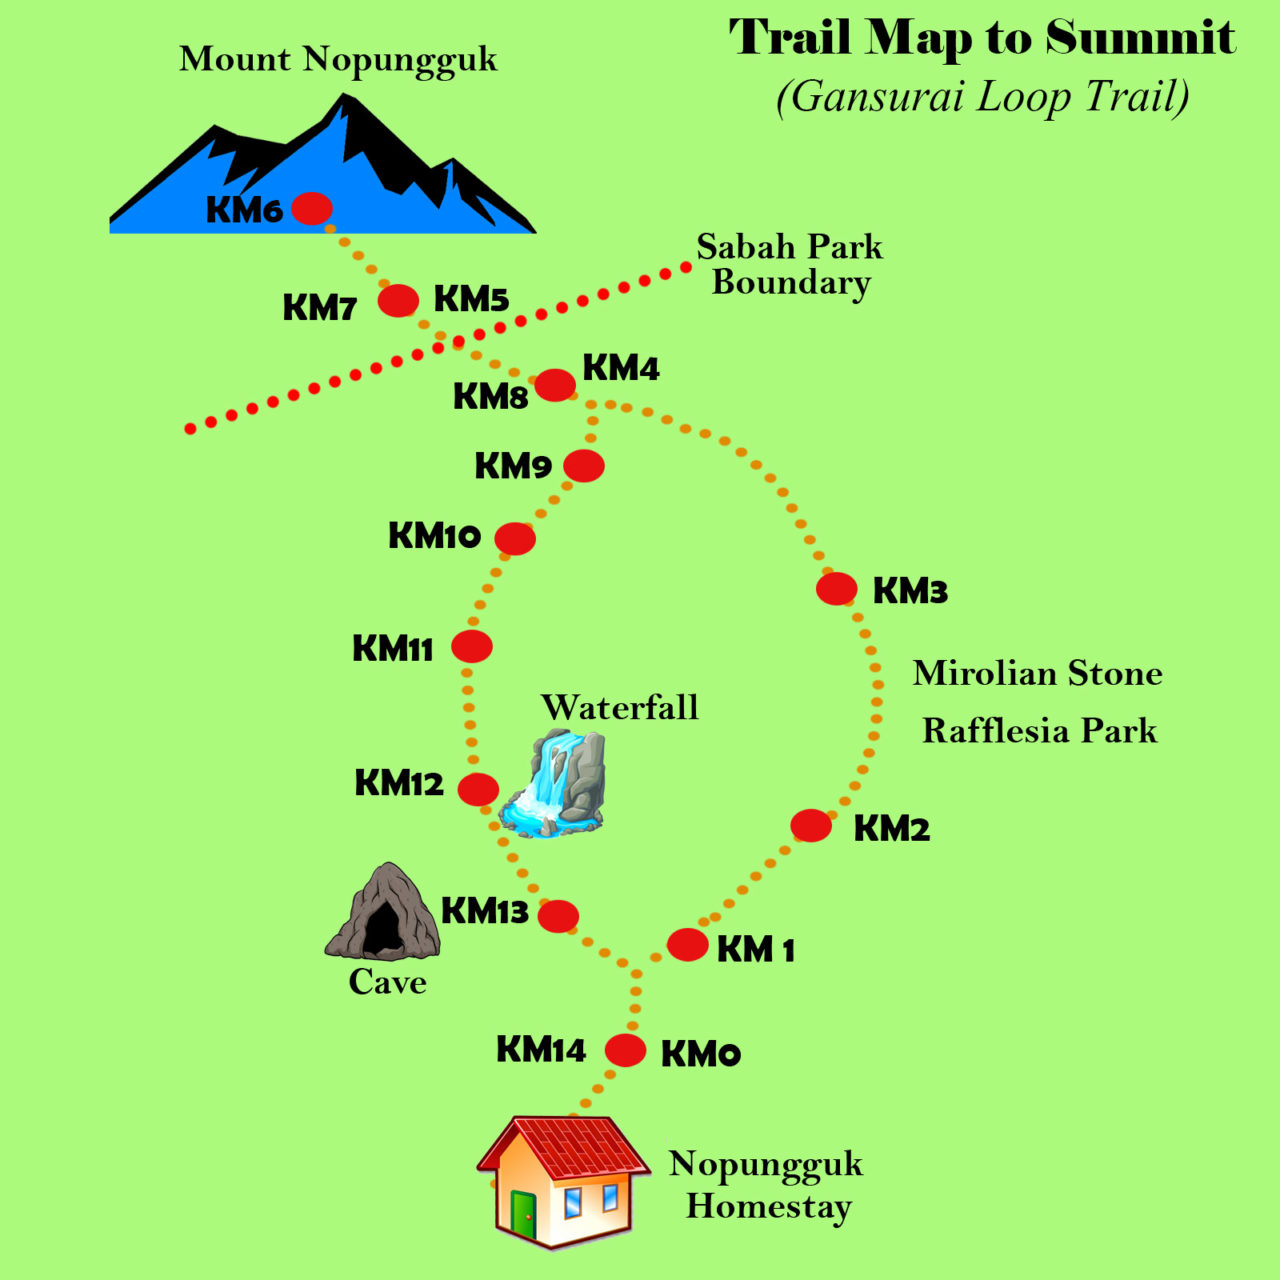 Trail map to the summit of Mount Nopungguk